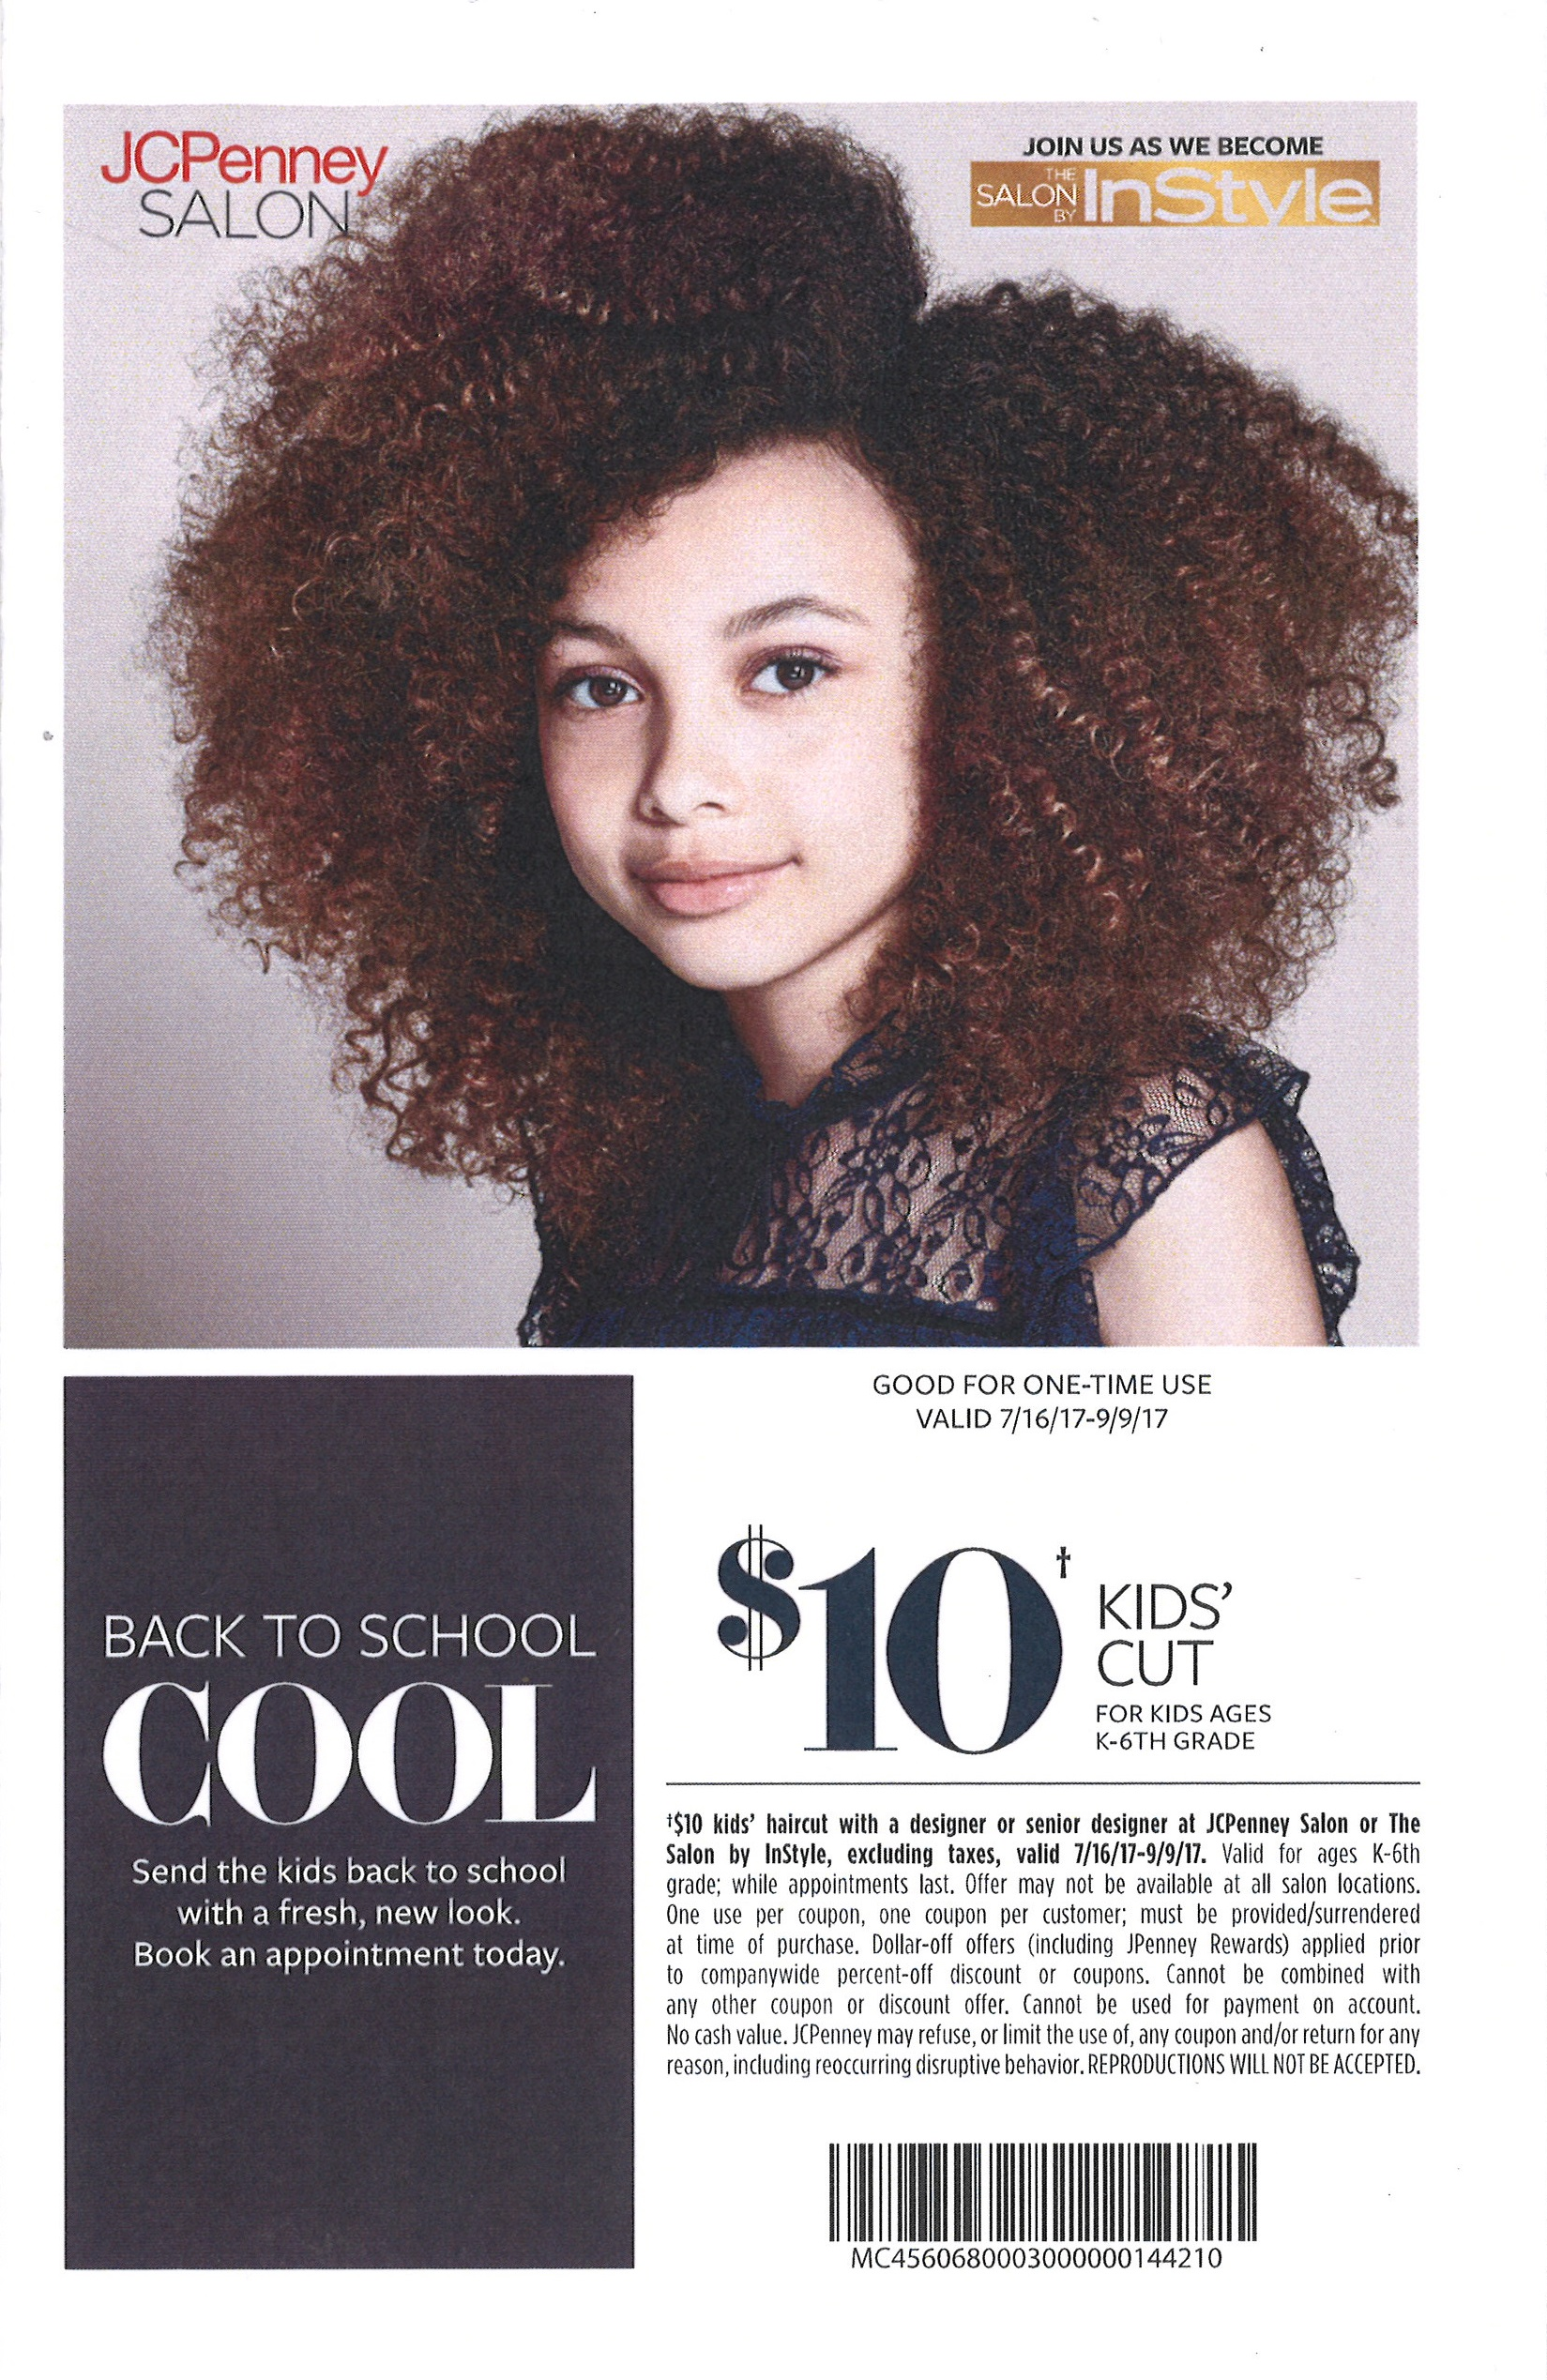 jcpenney salon prices haircut how much is a haircut at jcpenney salon haircuts models 3918